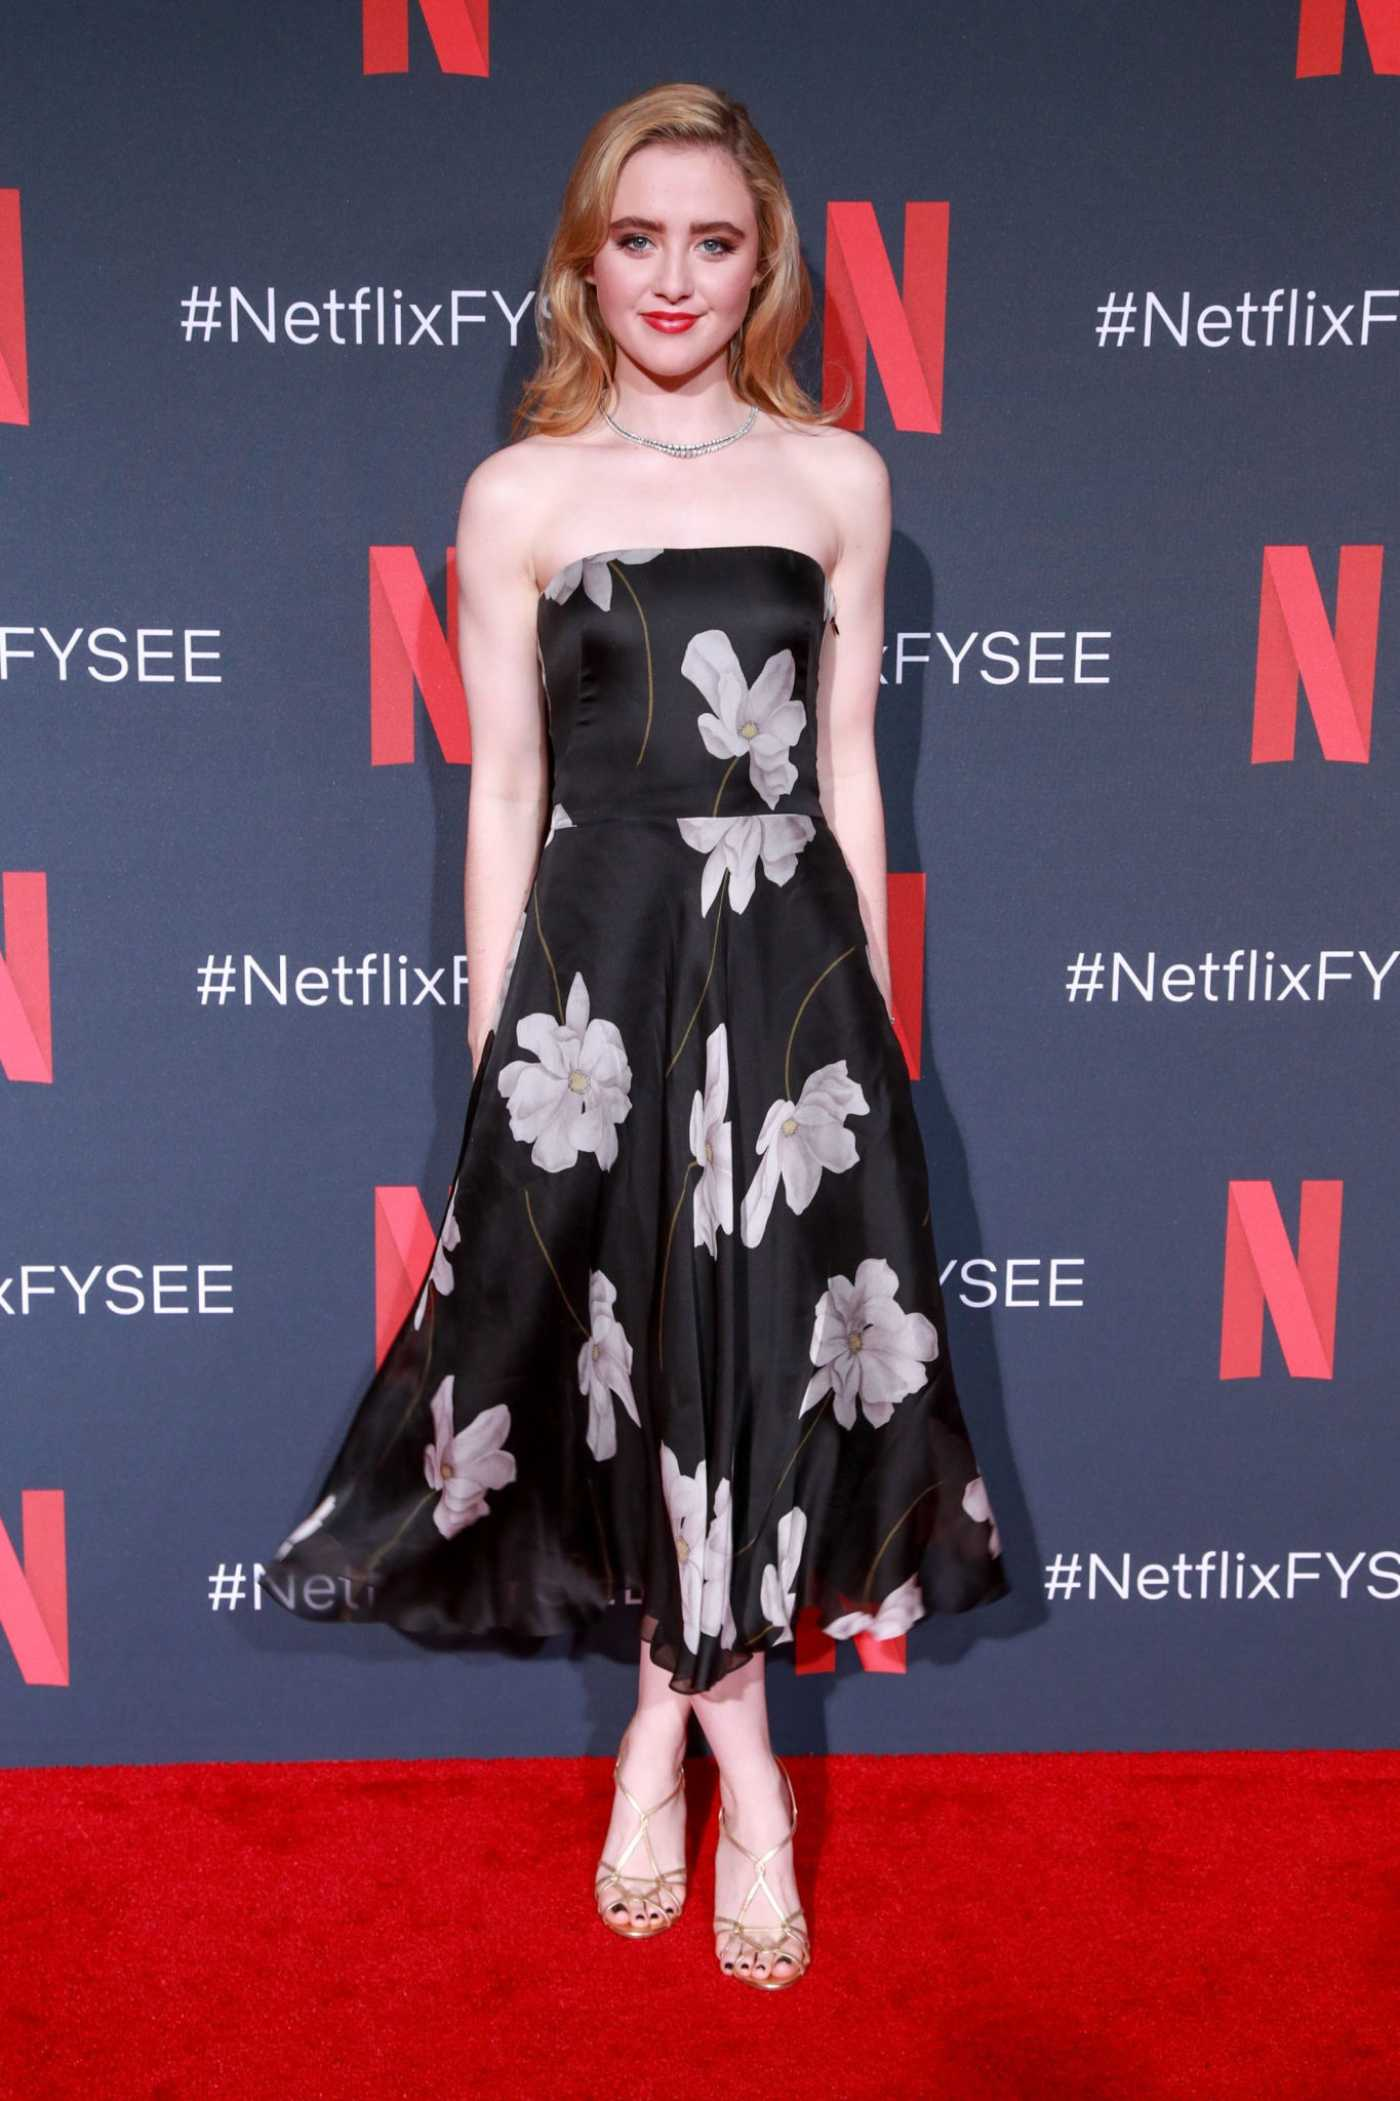 Kathryn Newton Attends Netflix FYC Event: Prom Night Photocall in Los Angeles 05/17/2019